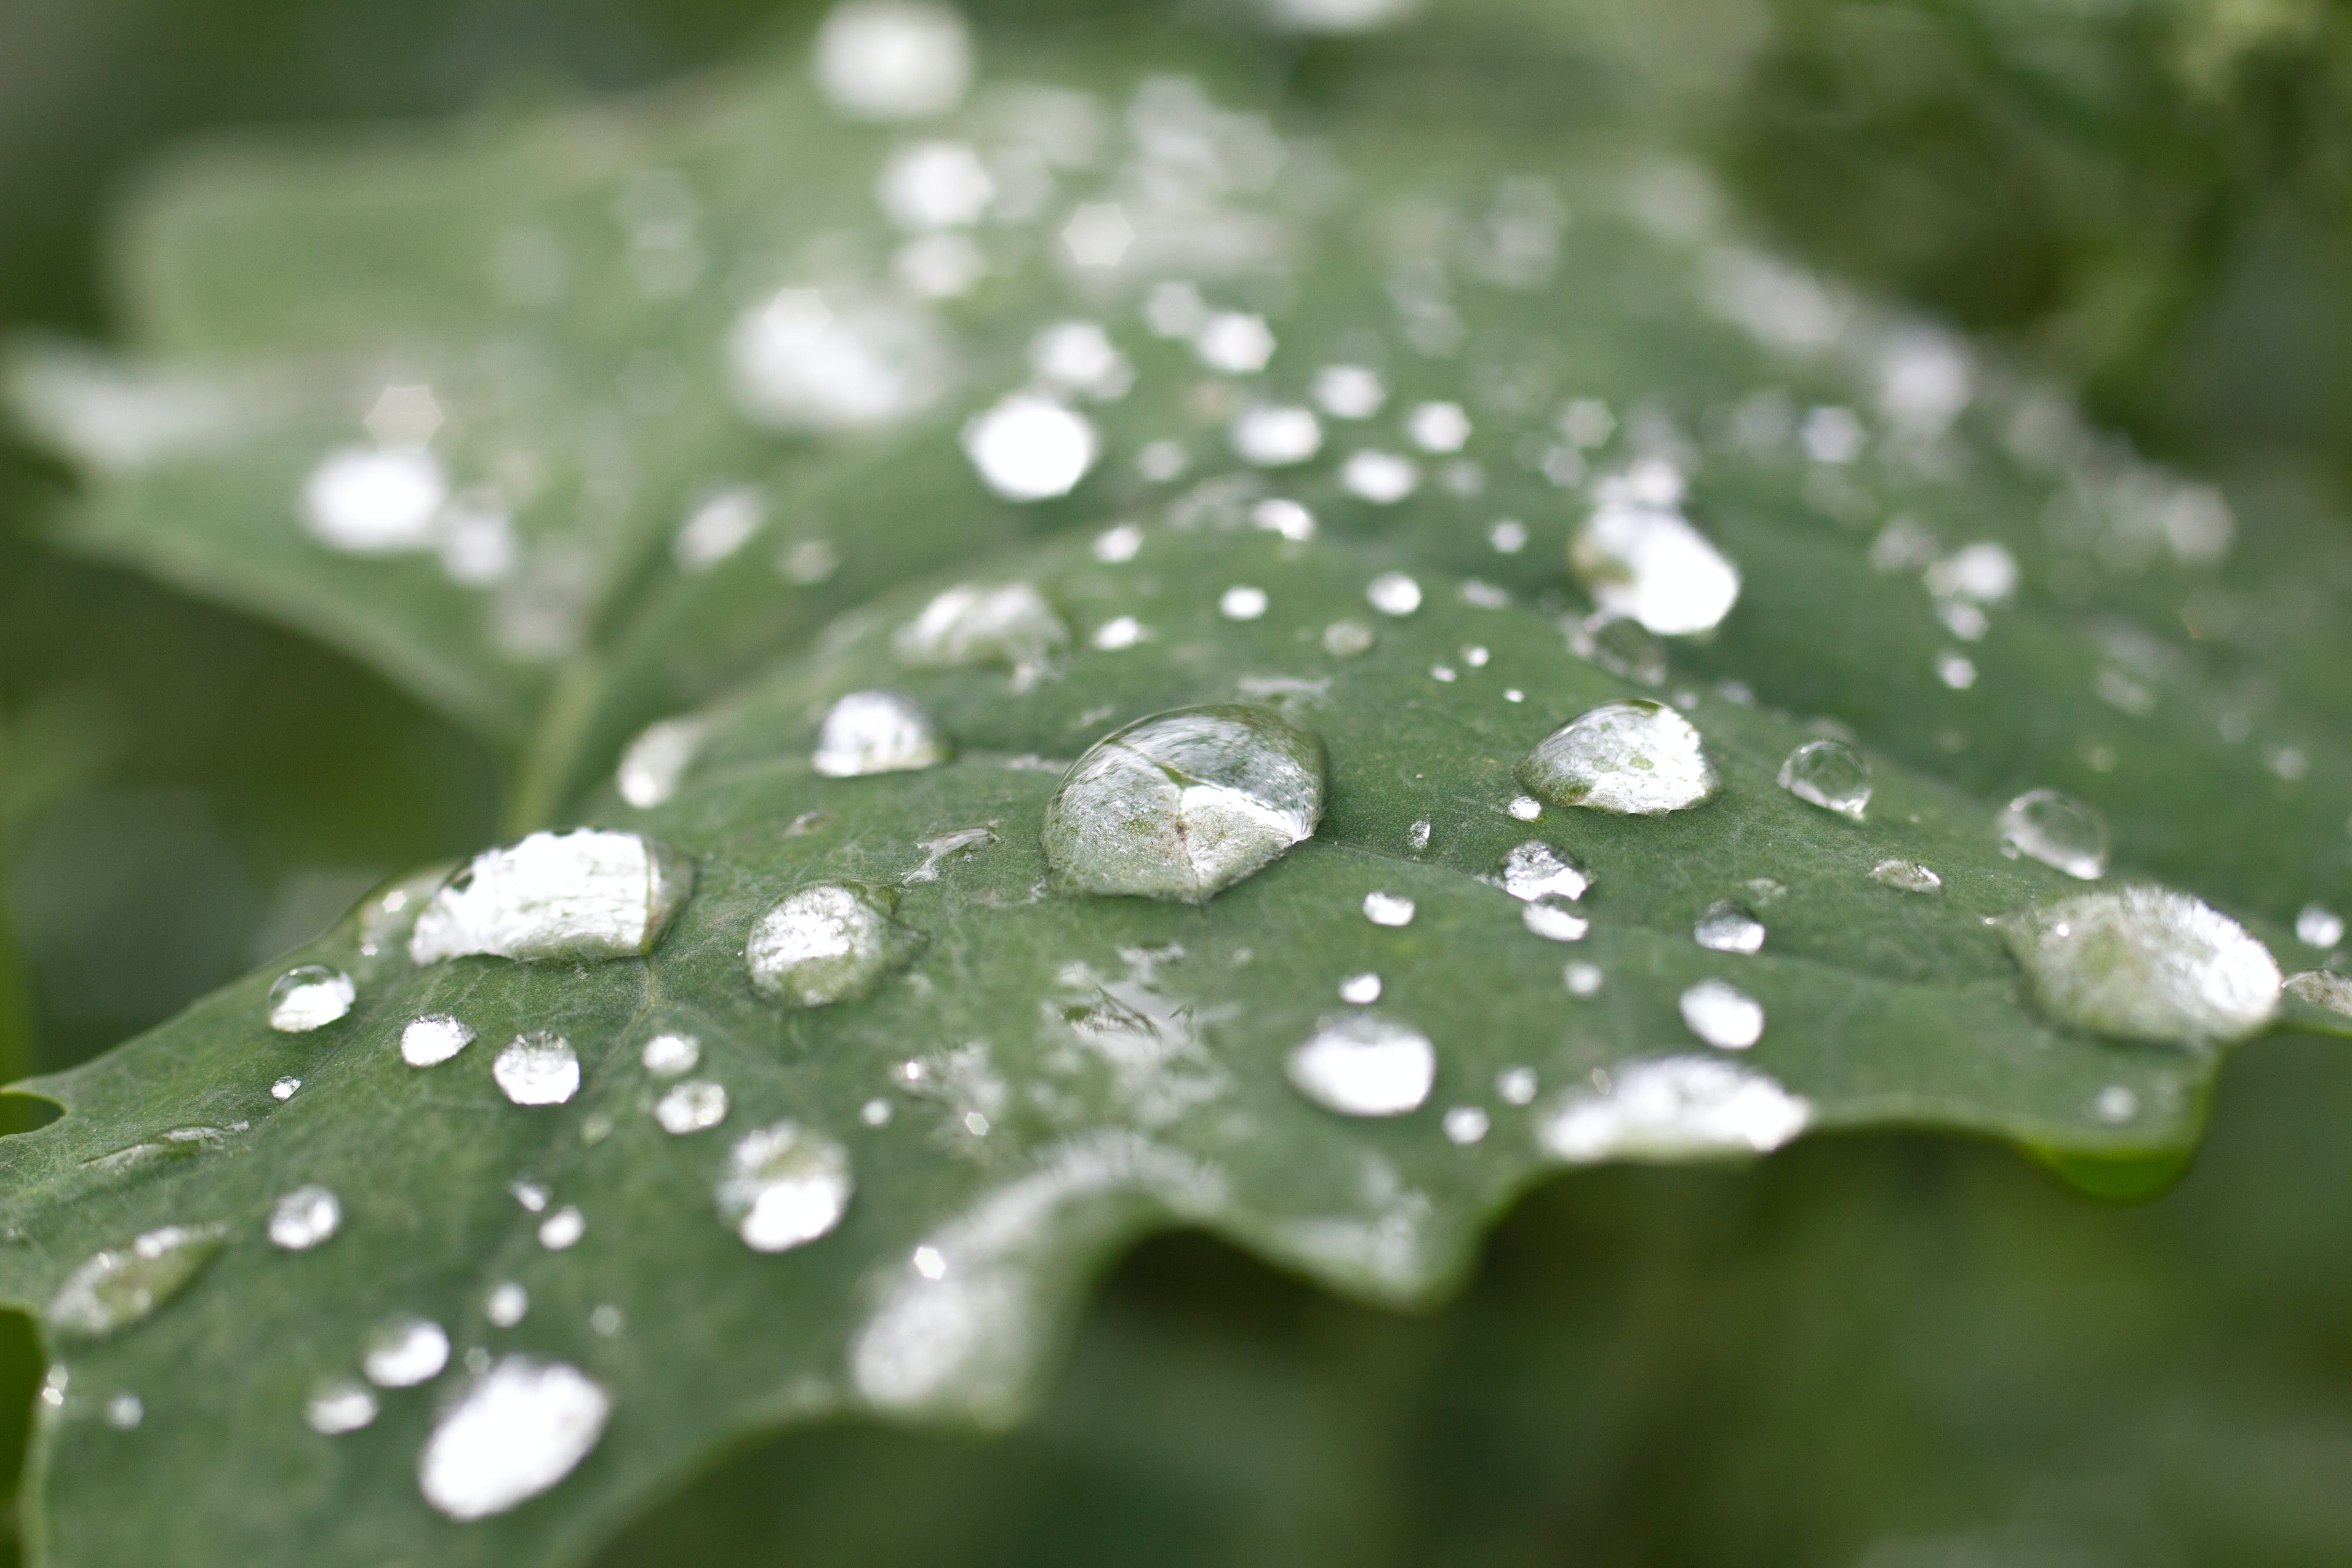 Free stock photo of nature, water, leaf, dew